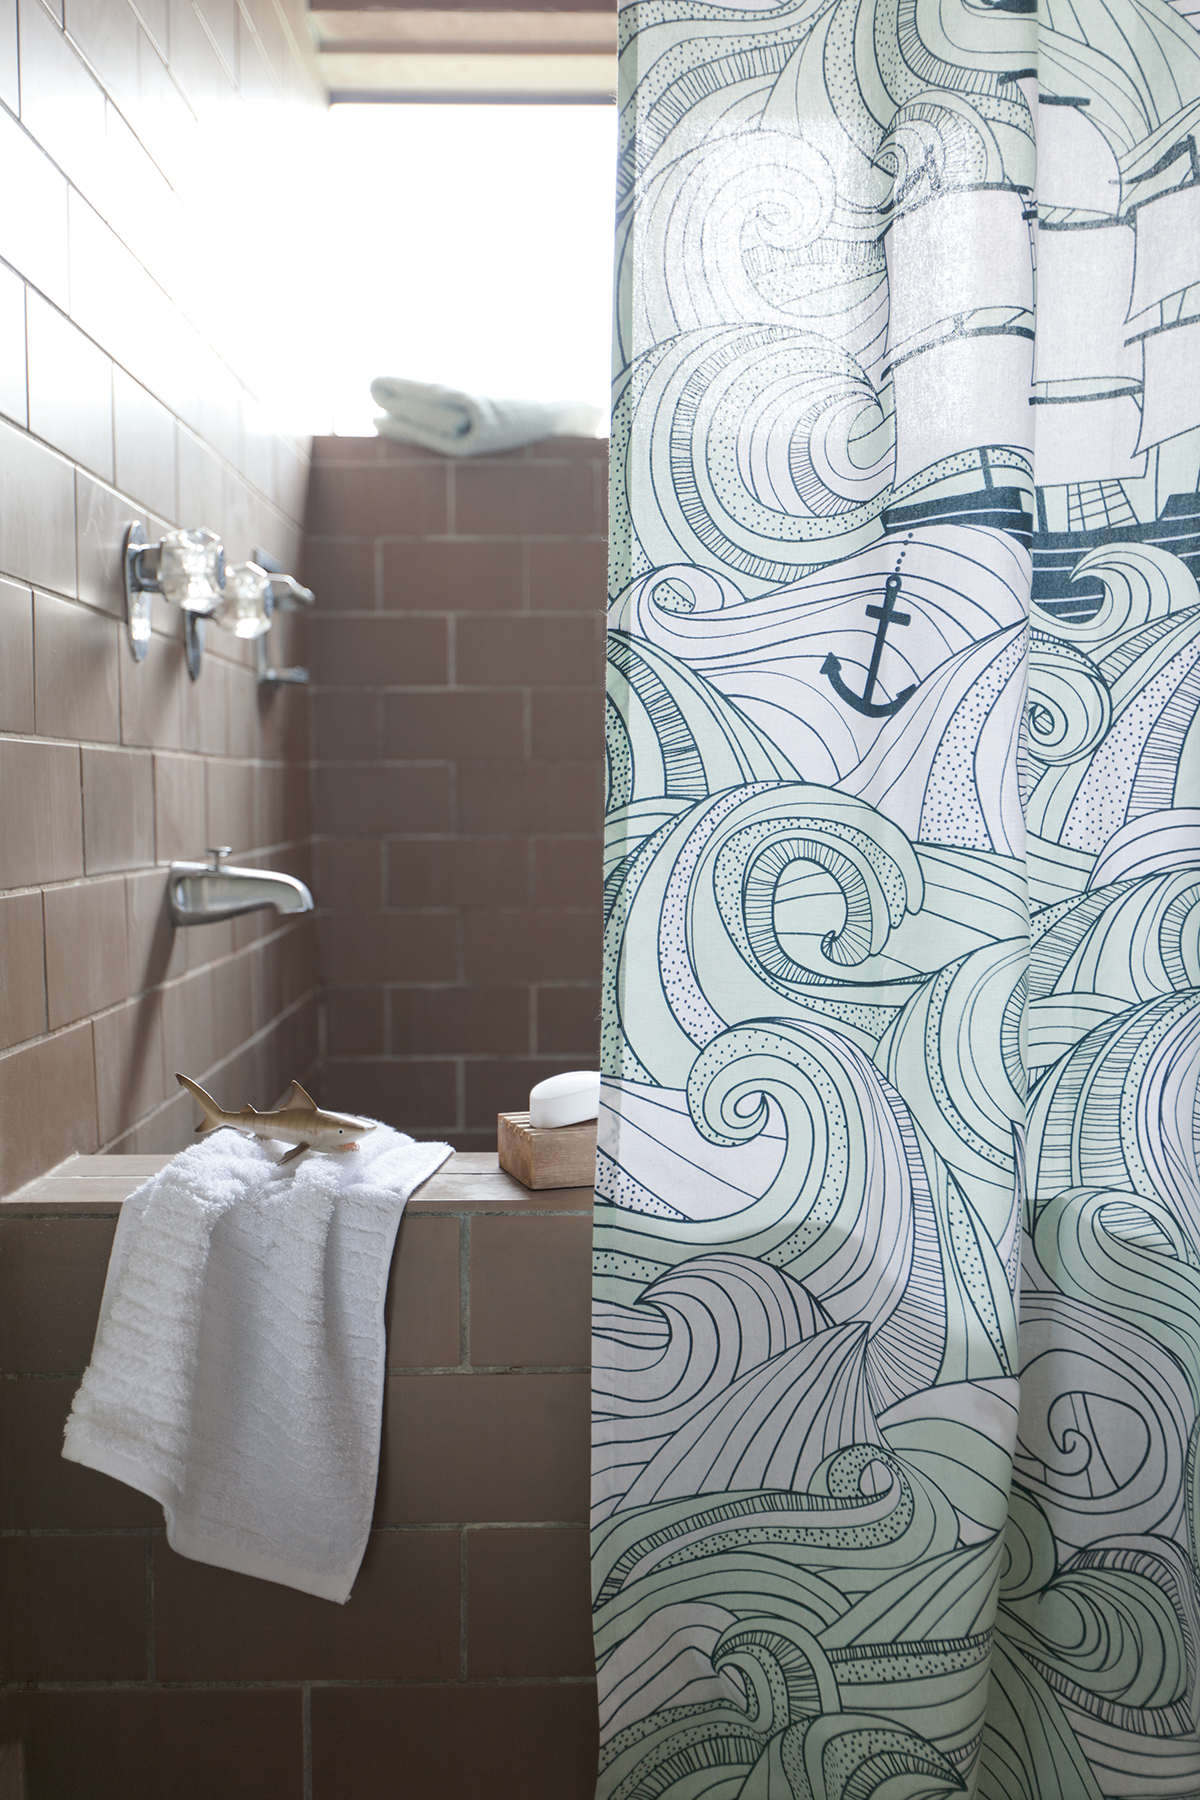 Ocean shower curtains - Danica Studio Odyssey Shower Curtainget Lost At Sea With The Detailed Swirls Of A Churning Aquamarine Ocean